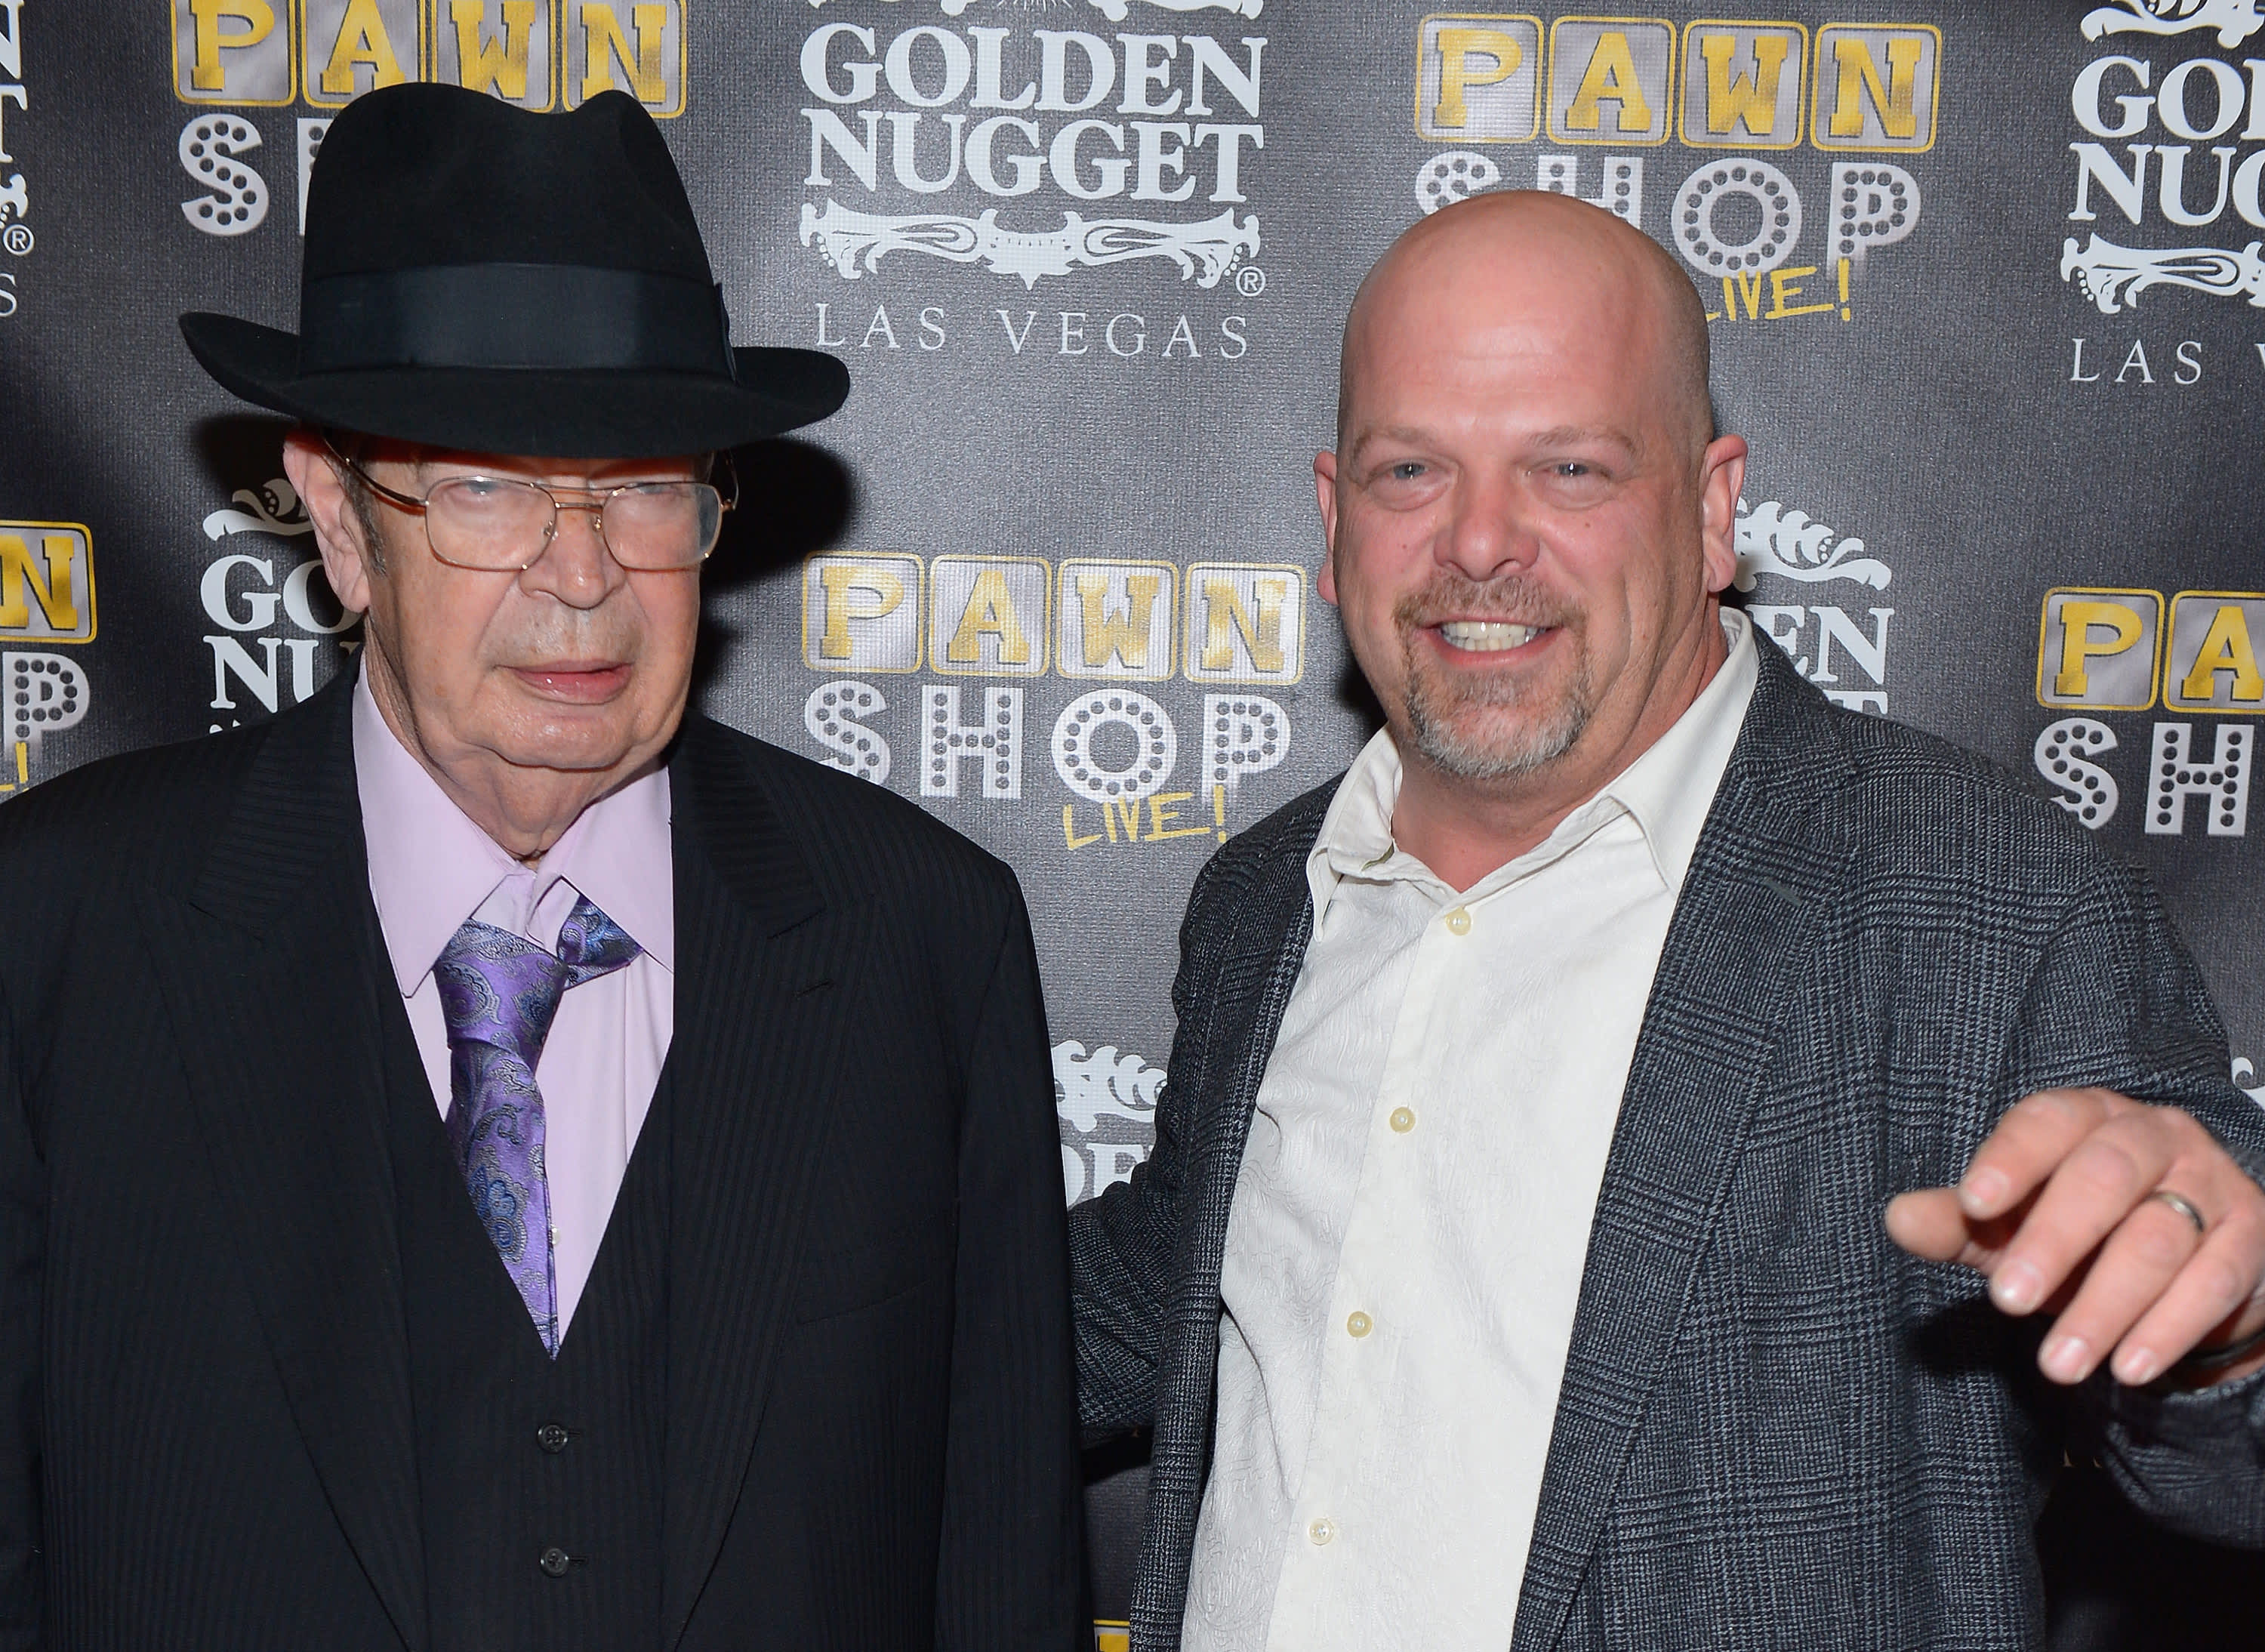 Pawn Stars Richard Harrison Known As The Old Man Dies